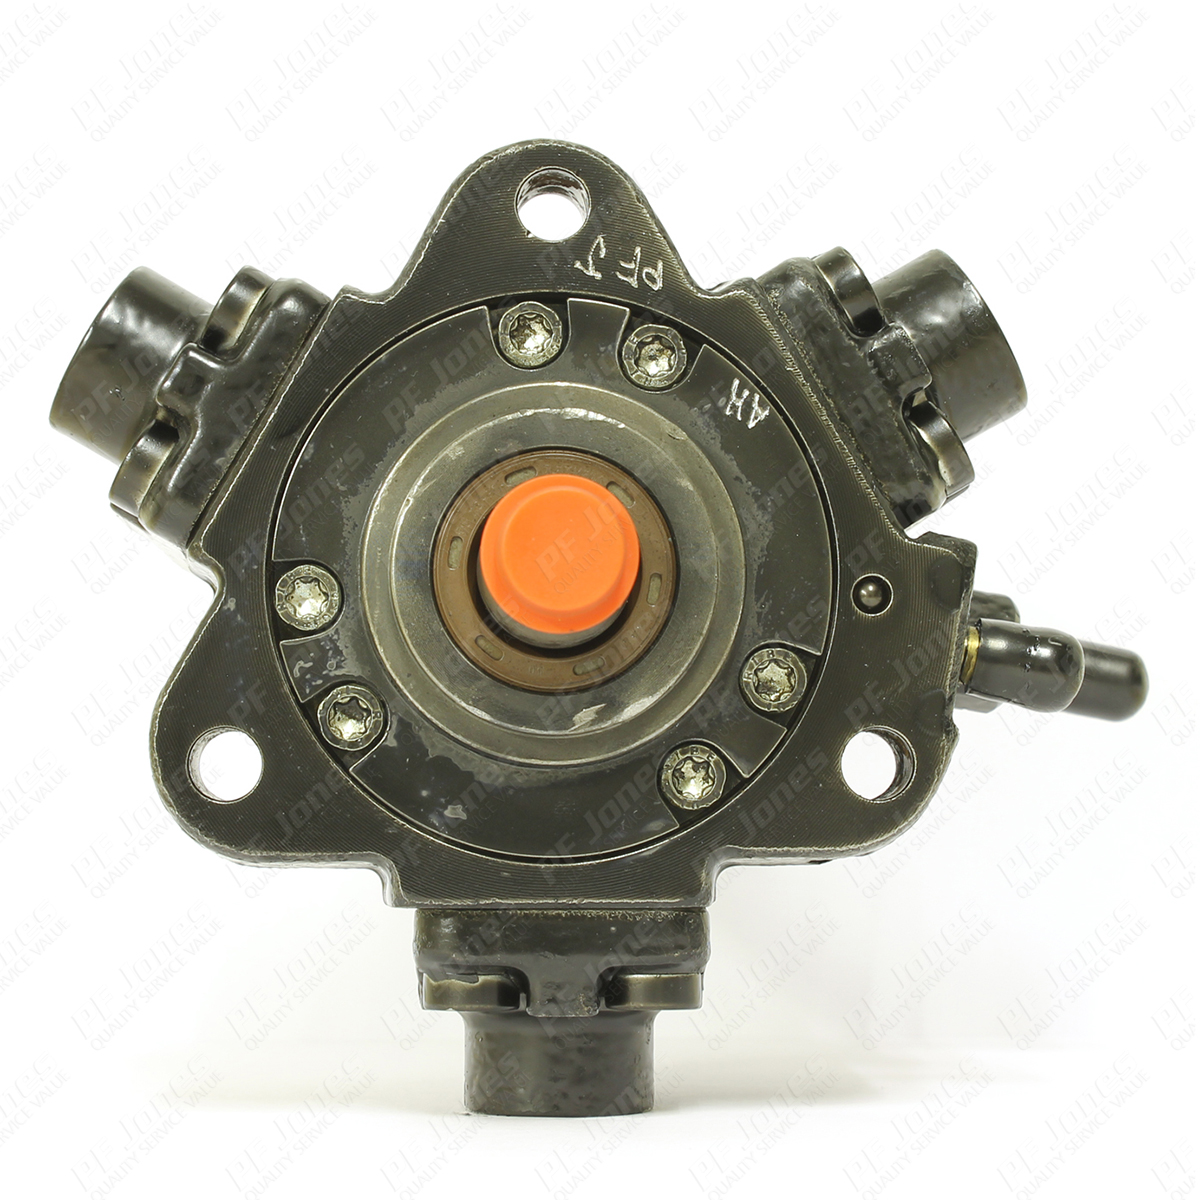 Alfa Romeo Brera 2.4 JTDm 20V 2006-2011 New Bosch Common Rail Pump 0445010349